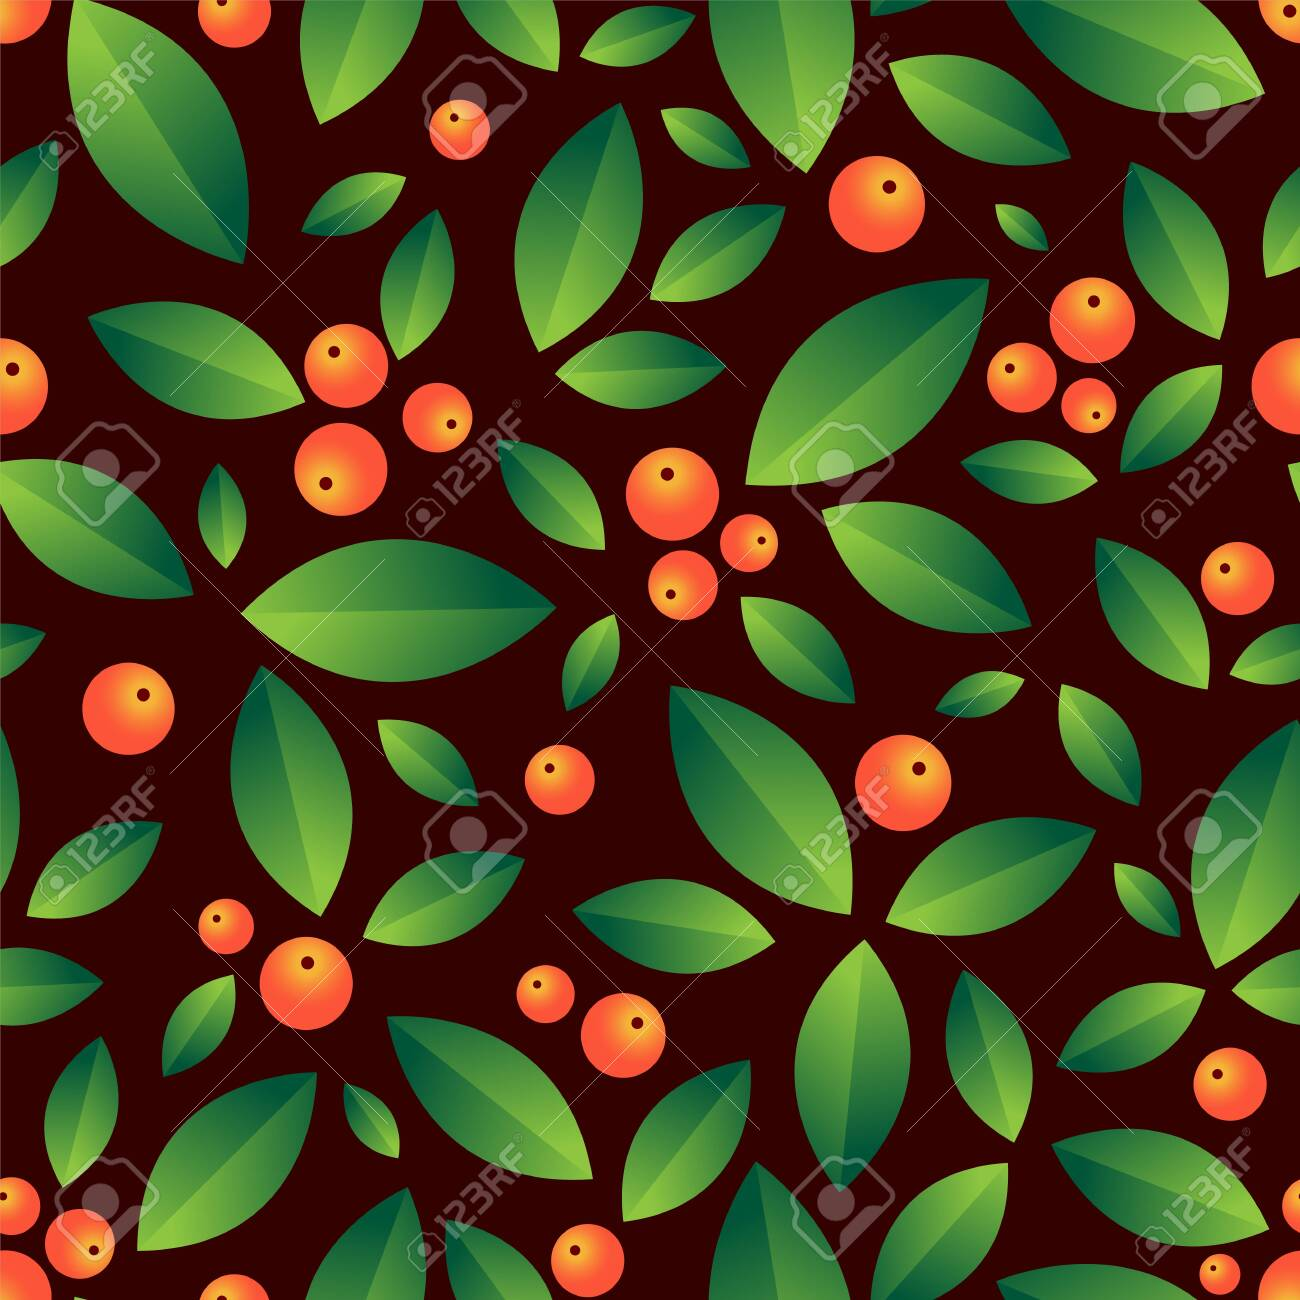 Leaves and berries beautiful seamless vector pattern - 149658413